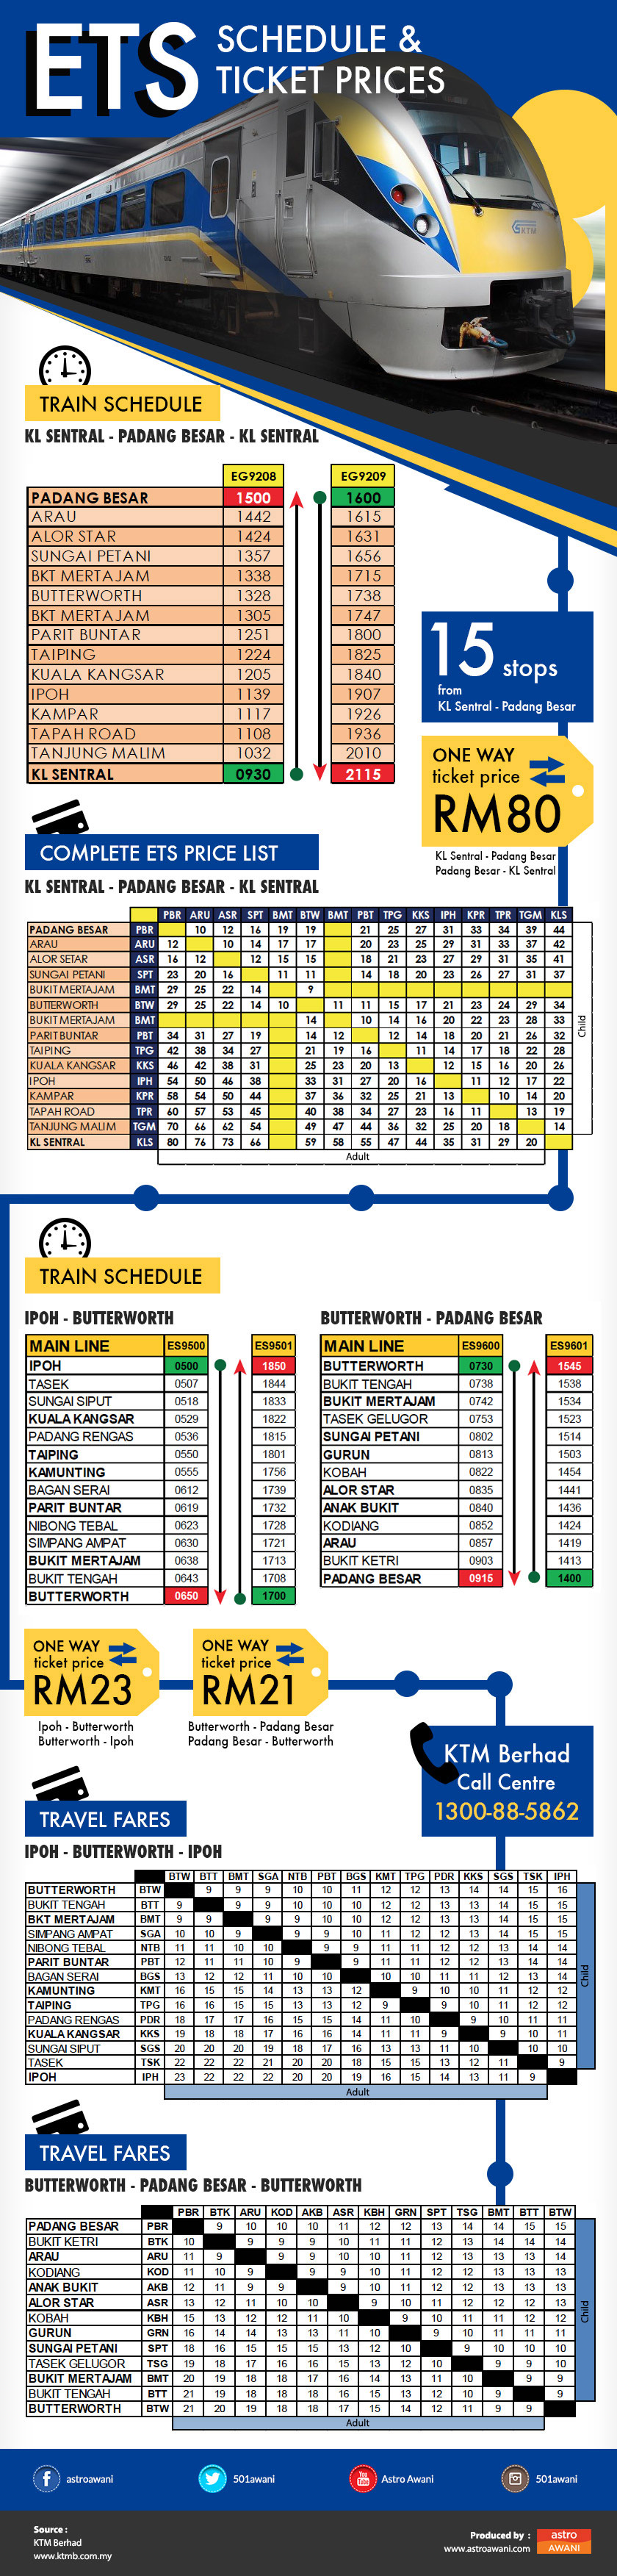 Ten new stations introduced are Anak Bukit, Bukit Ketri,Bukit Tengah, Kamunting, Kobah, Kodiang, Padang Rengas, Simpang Ampat, Tasek and Tasek Gelugor.